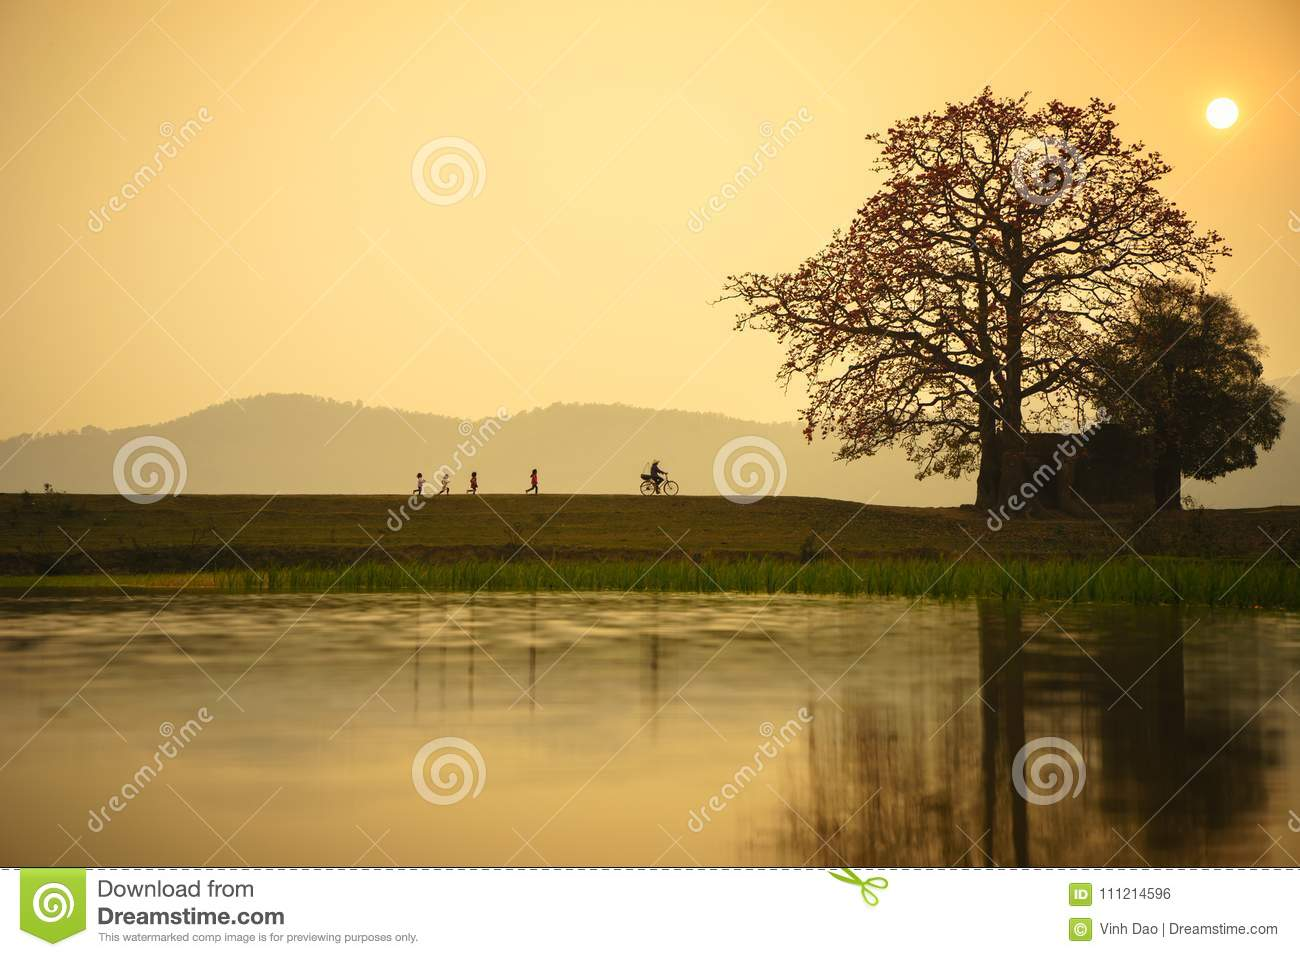 Vietnam landscape at sunset. Blossoming Bombax ceiba tree or Red Silk Cotton Flower with a woman cycling on countryside dyle